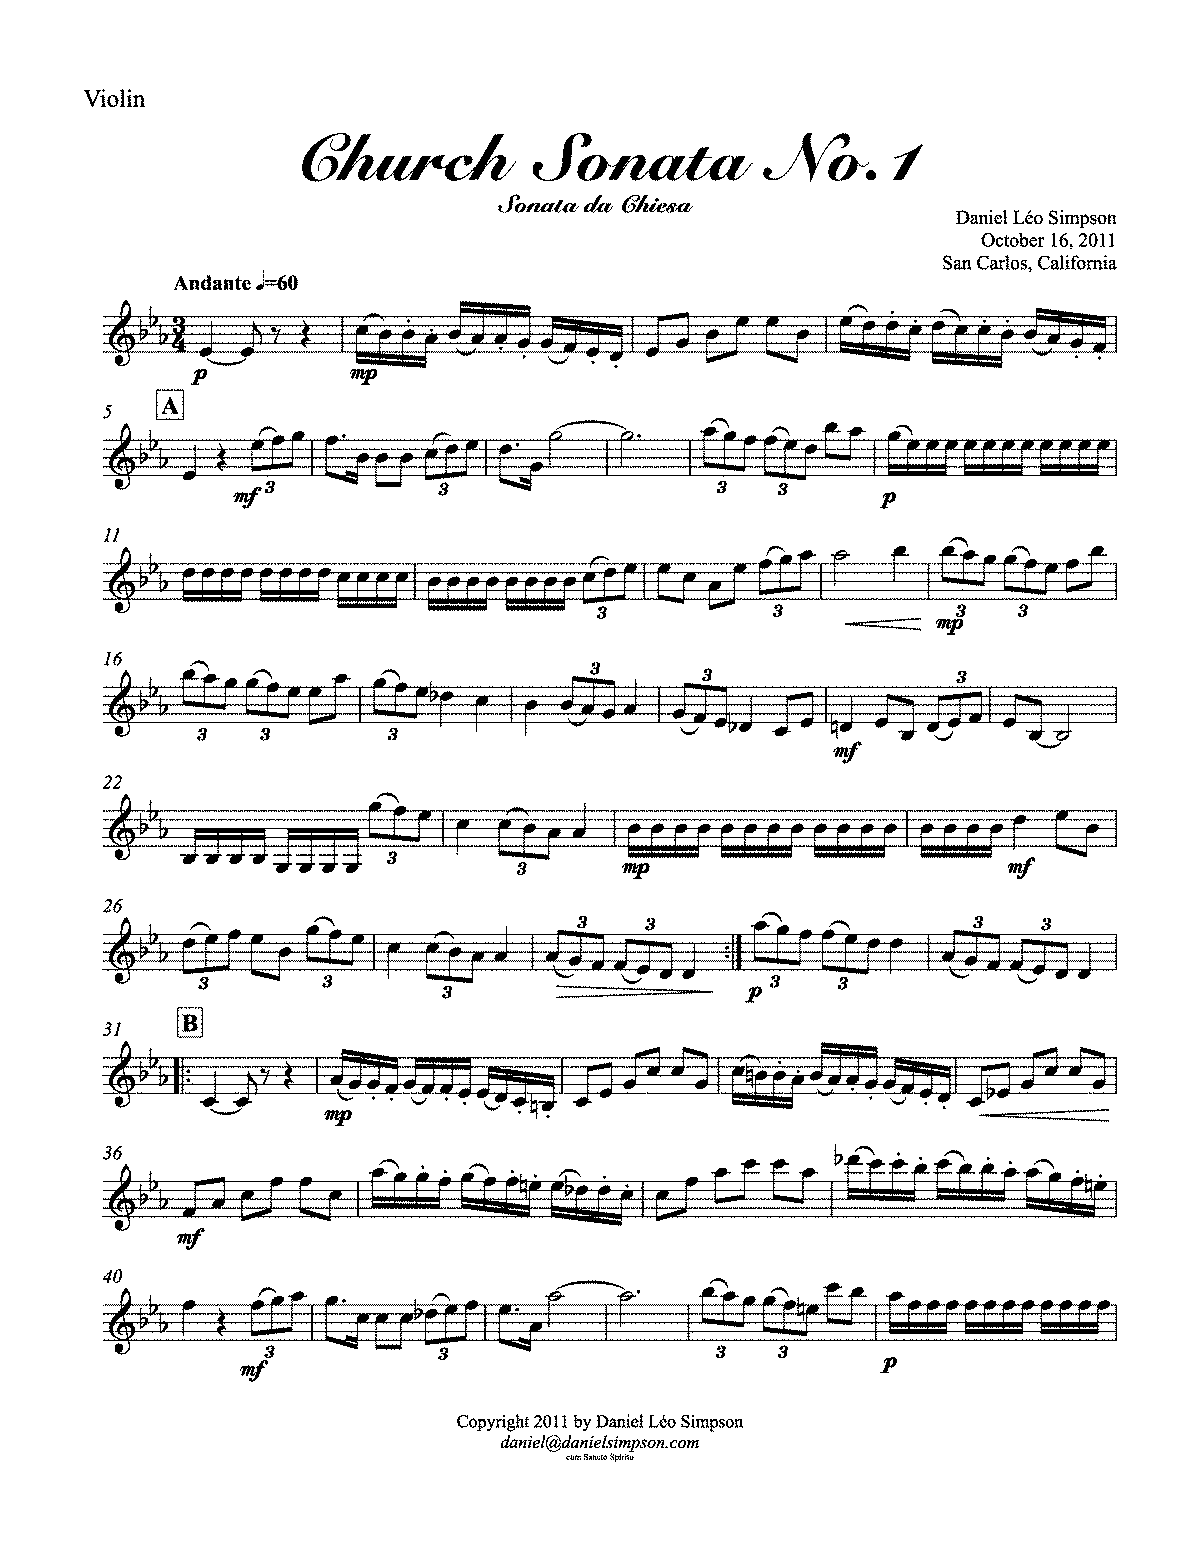 PMLP405794-VIOLIN-church-sonata-01-simpson-091312.pdf